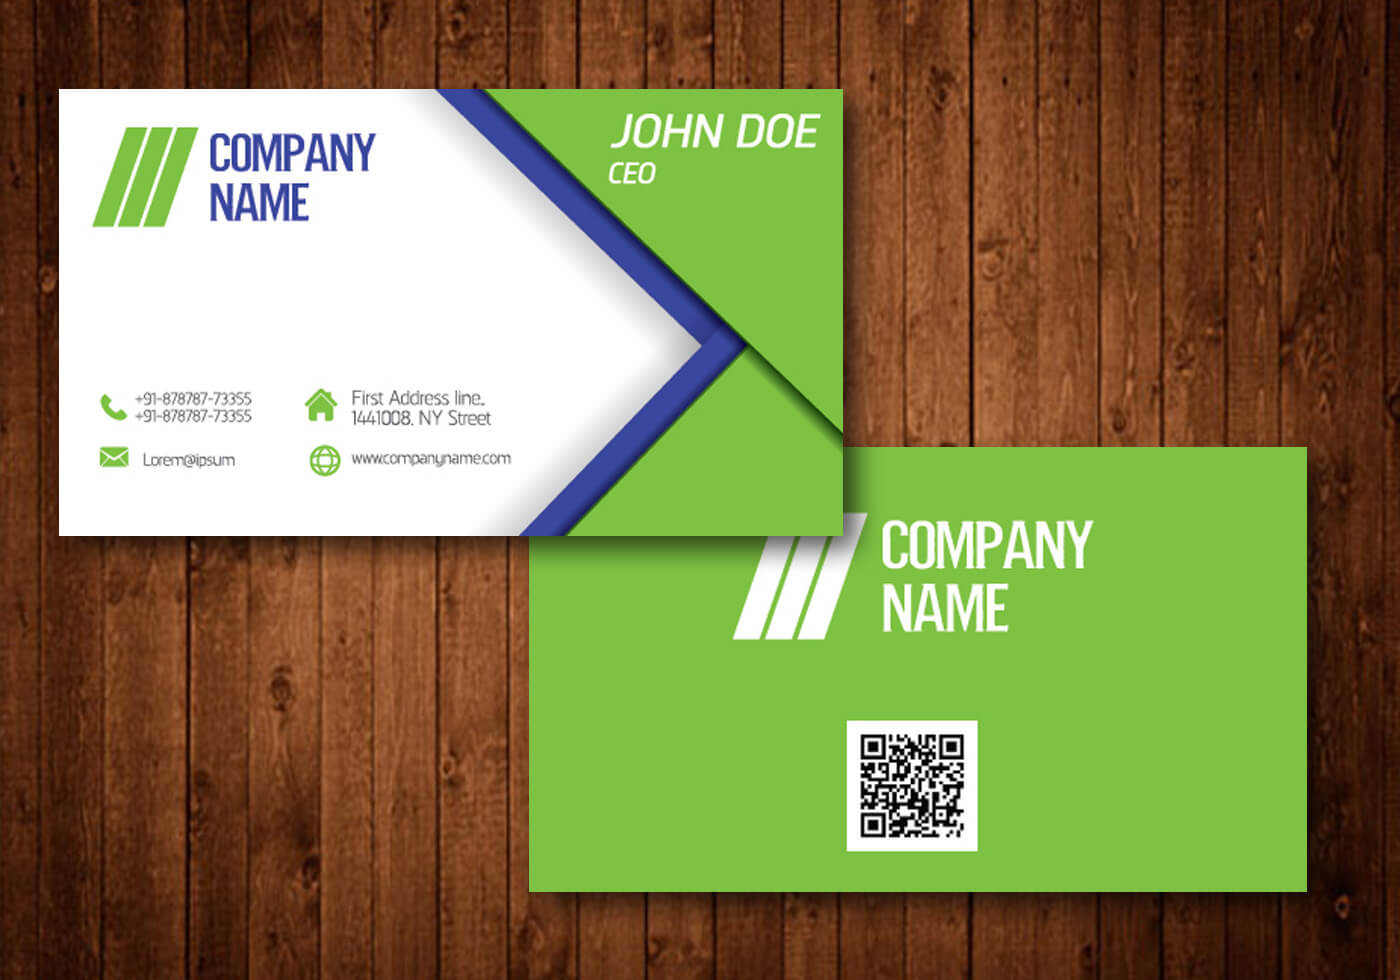 Business Card Free Vector Art - (109,932 Free Downloads) regarding Templates For Visiting Cards Free Downloads